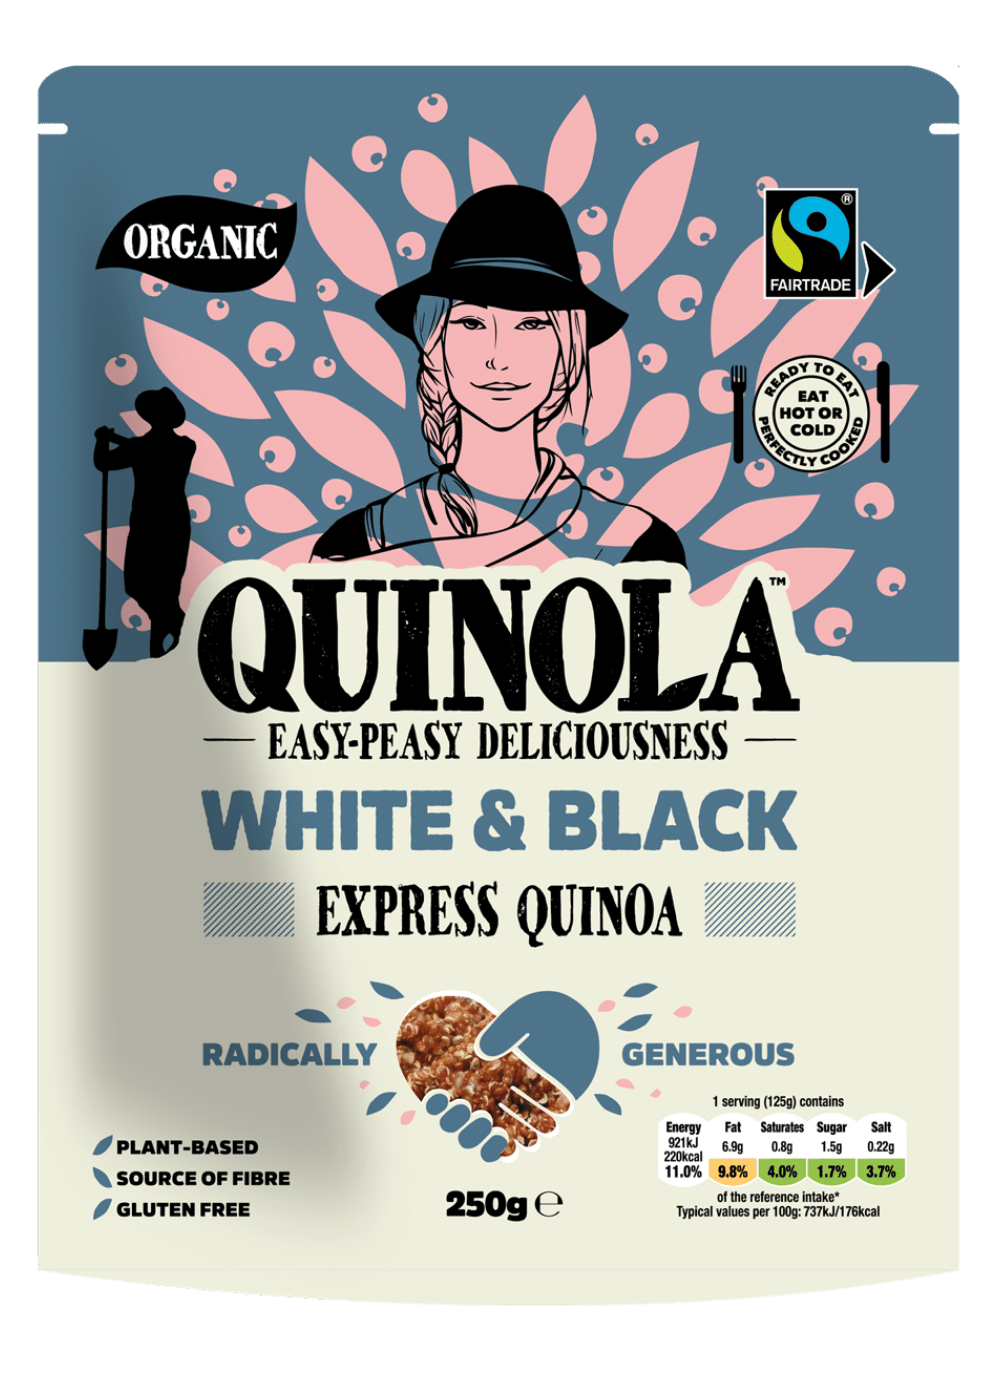 White and black ready to eat quinoa